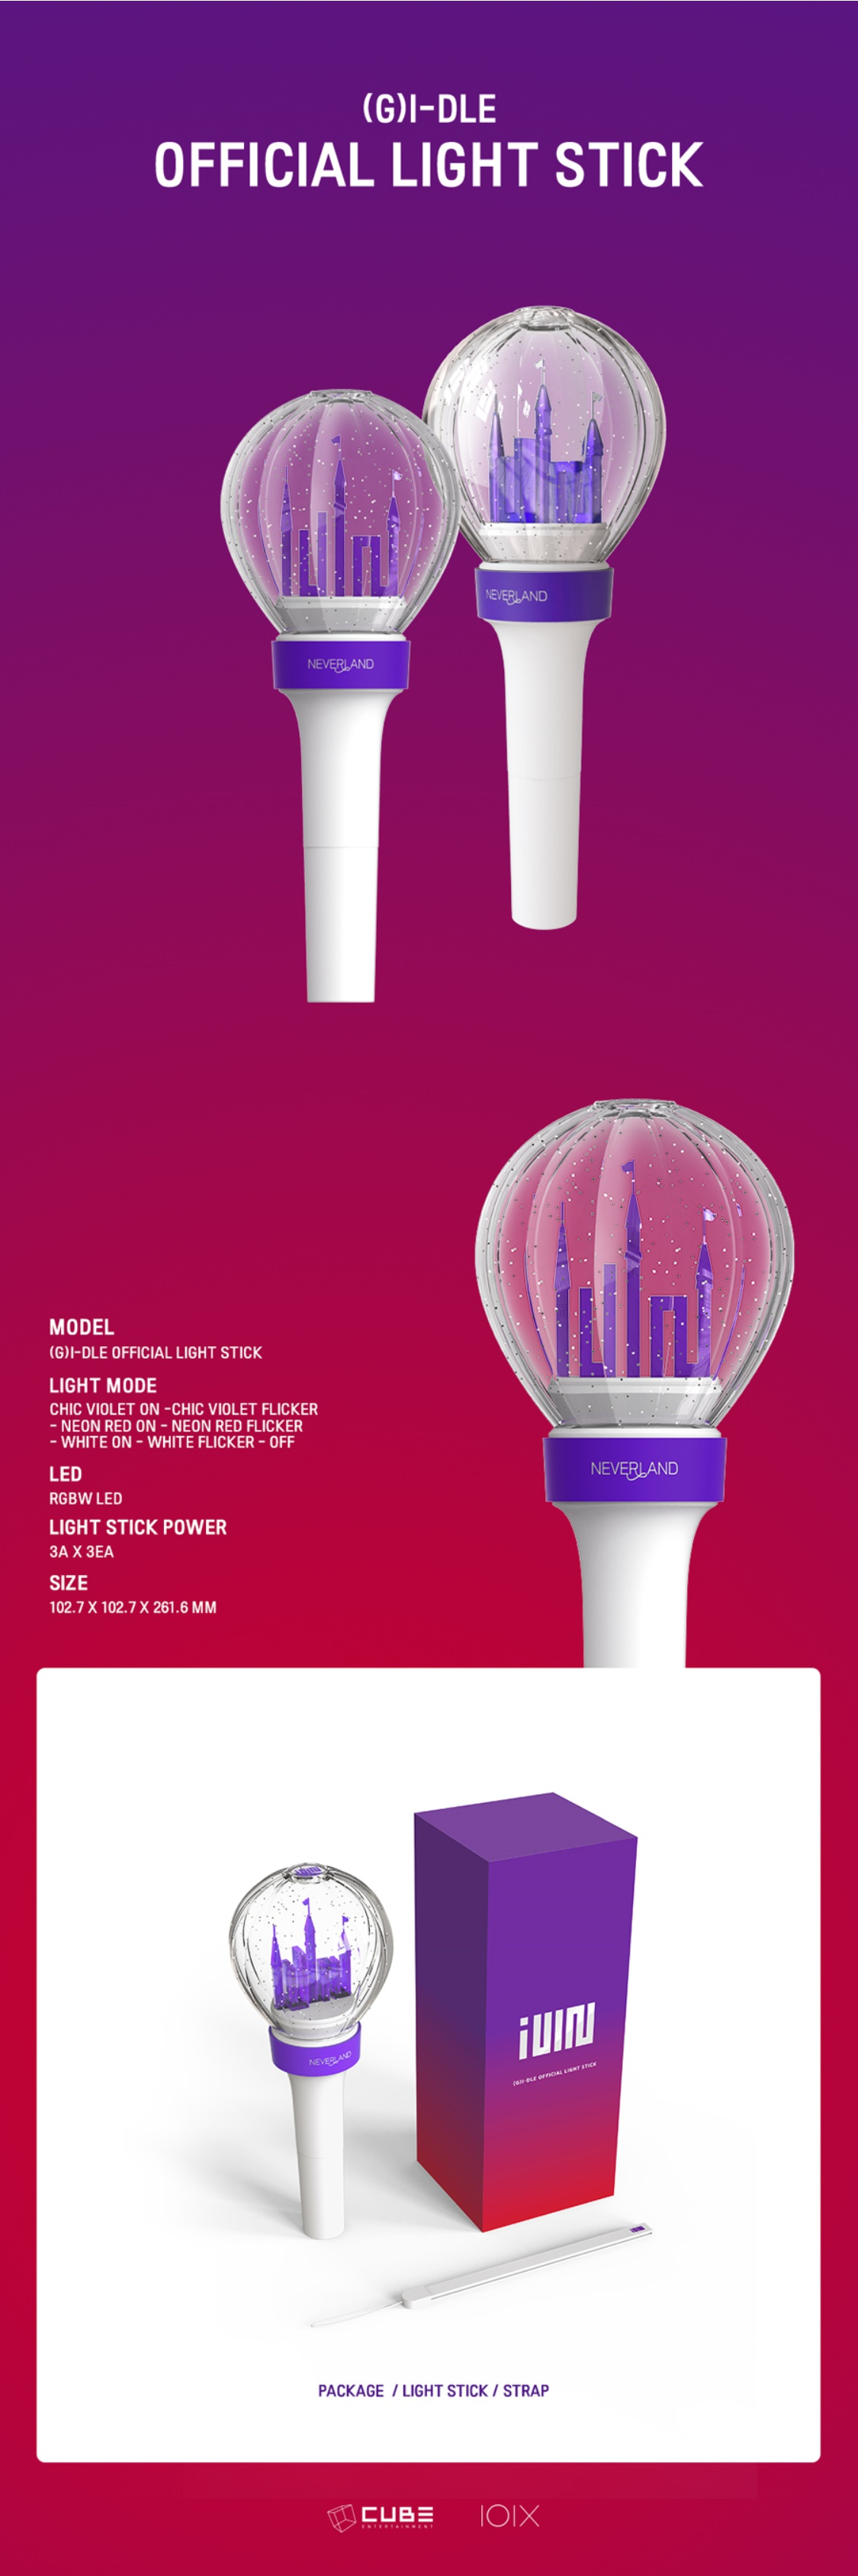 G)I-DLE - Official Light Stick